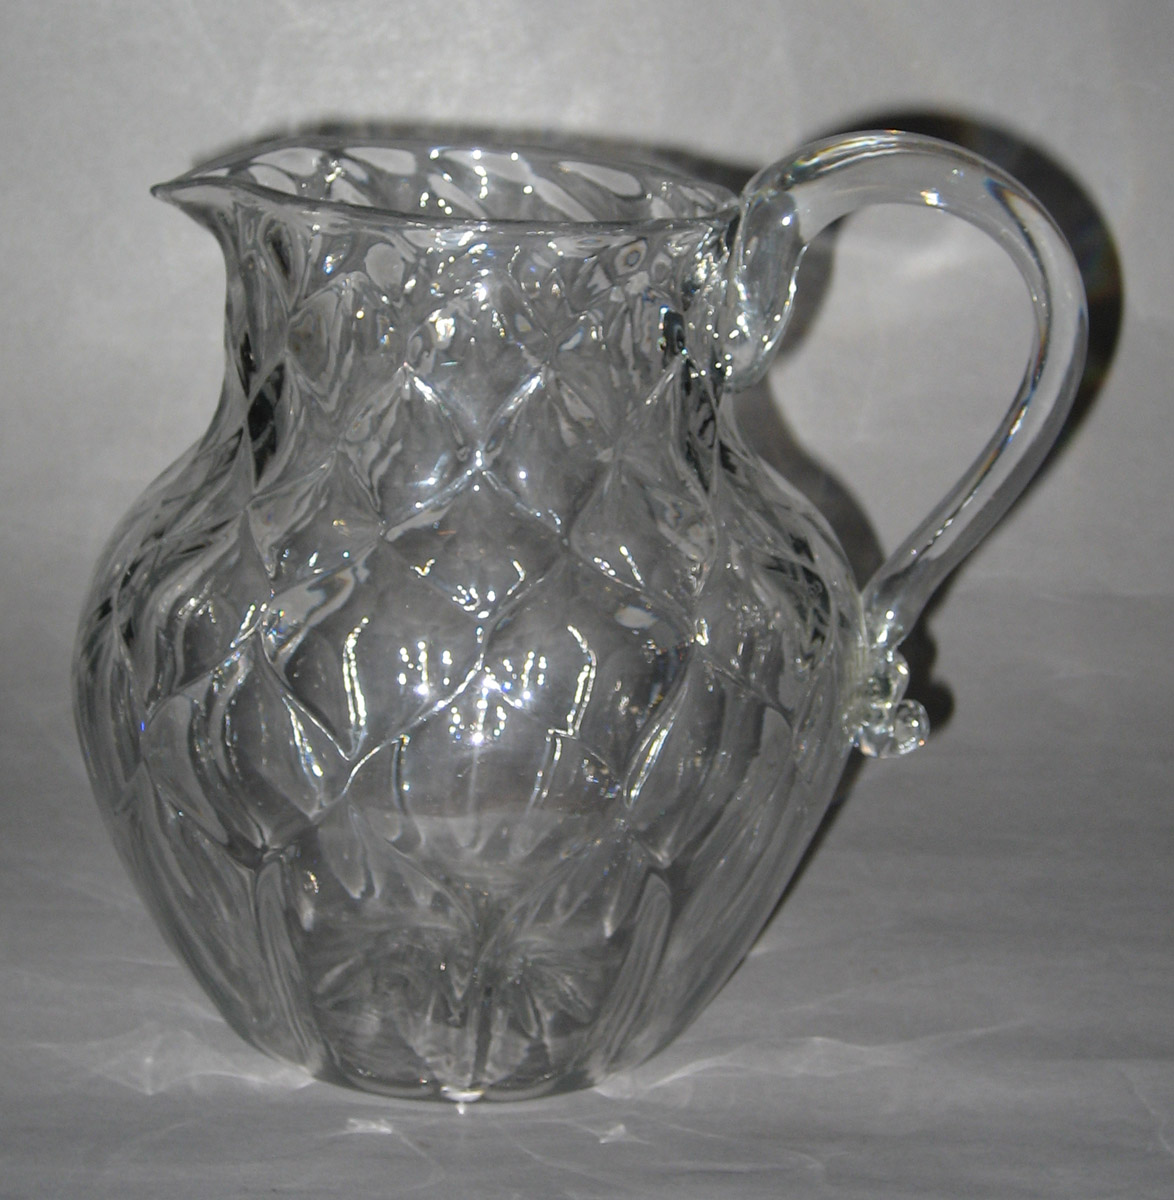 1957.0018.021 Glass Jug or Pitcher